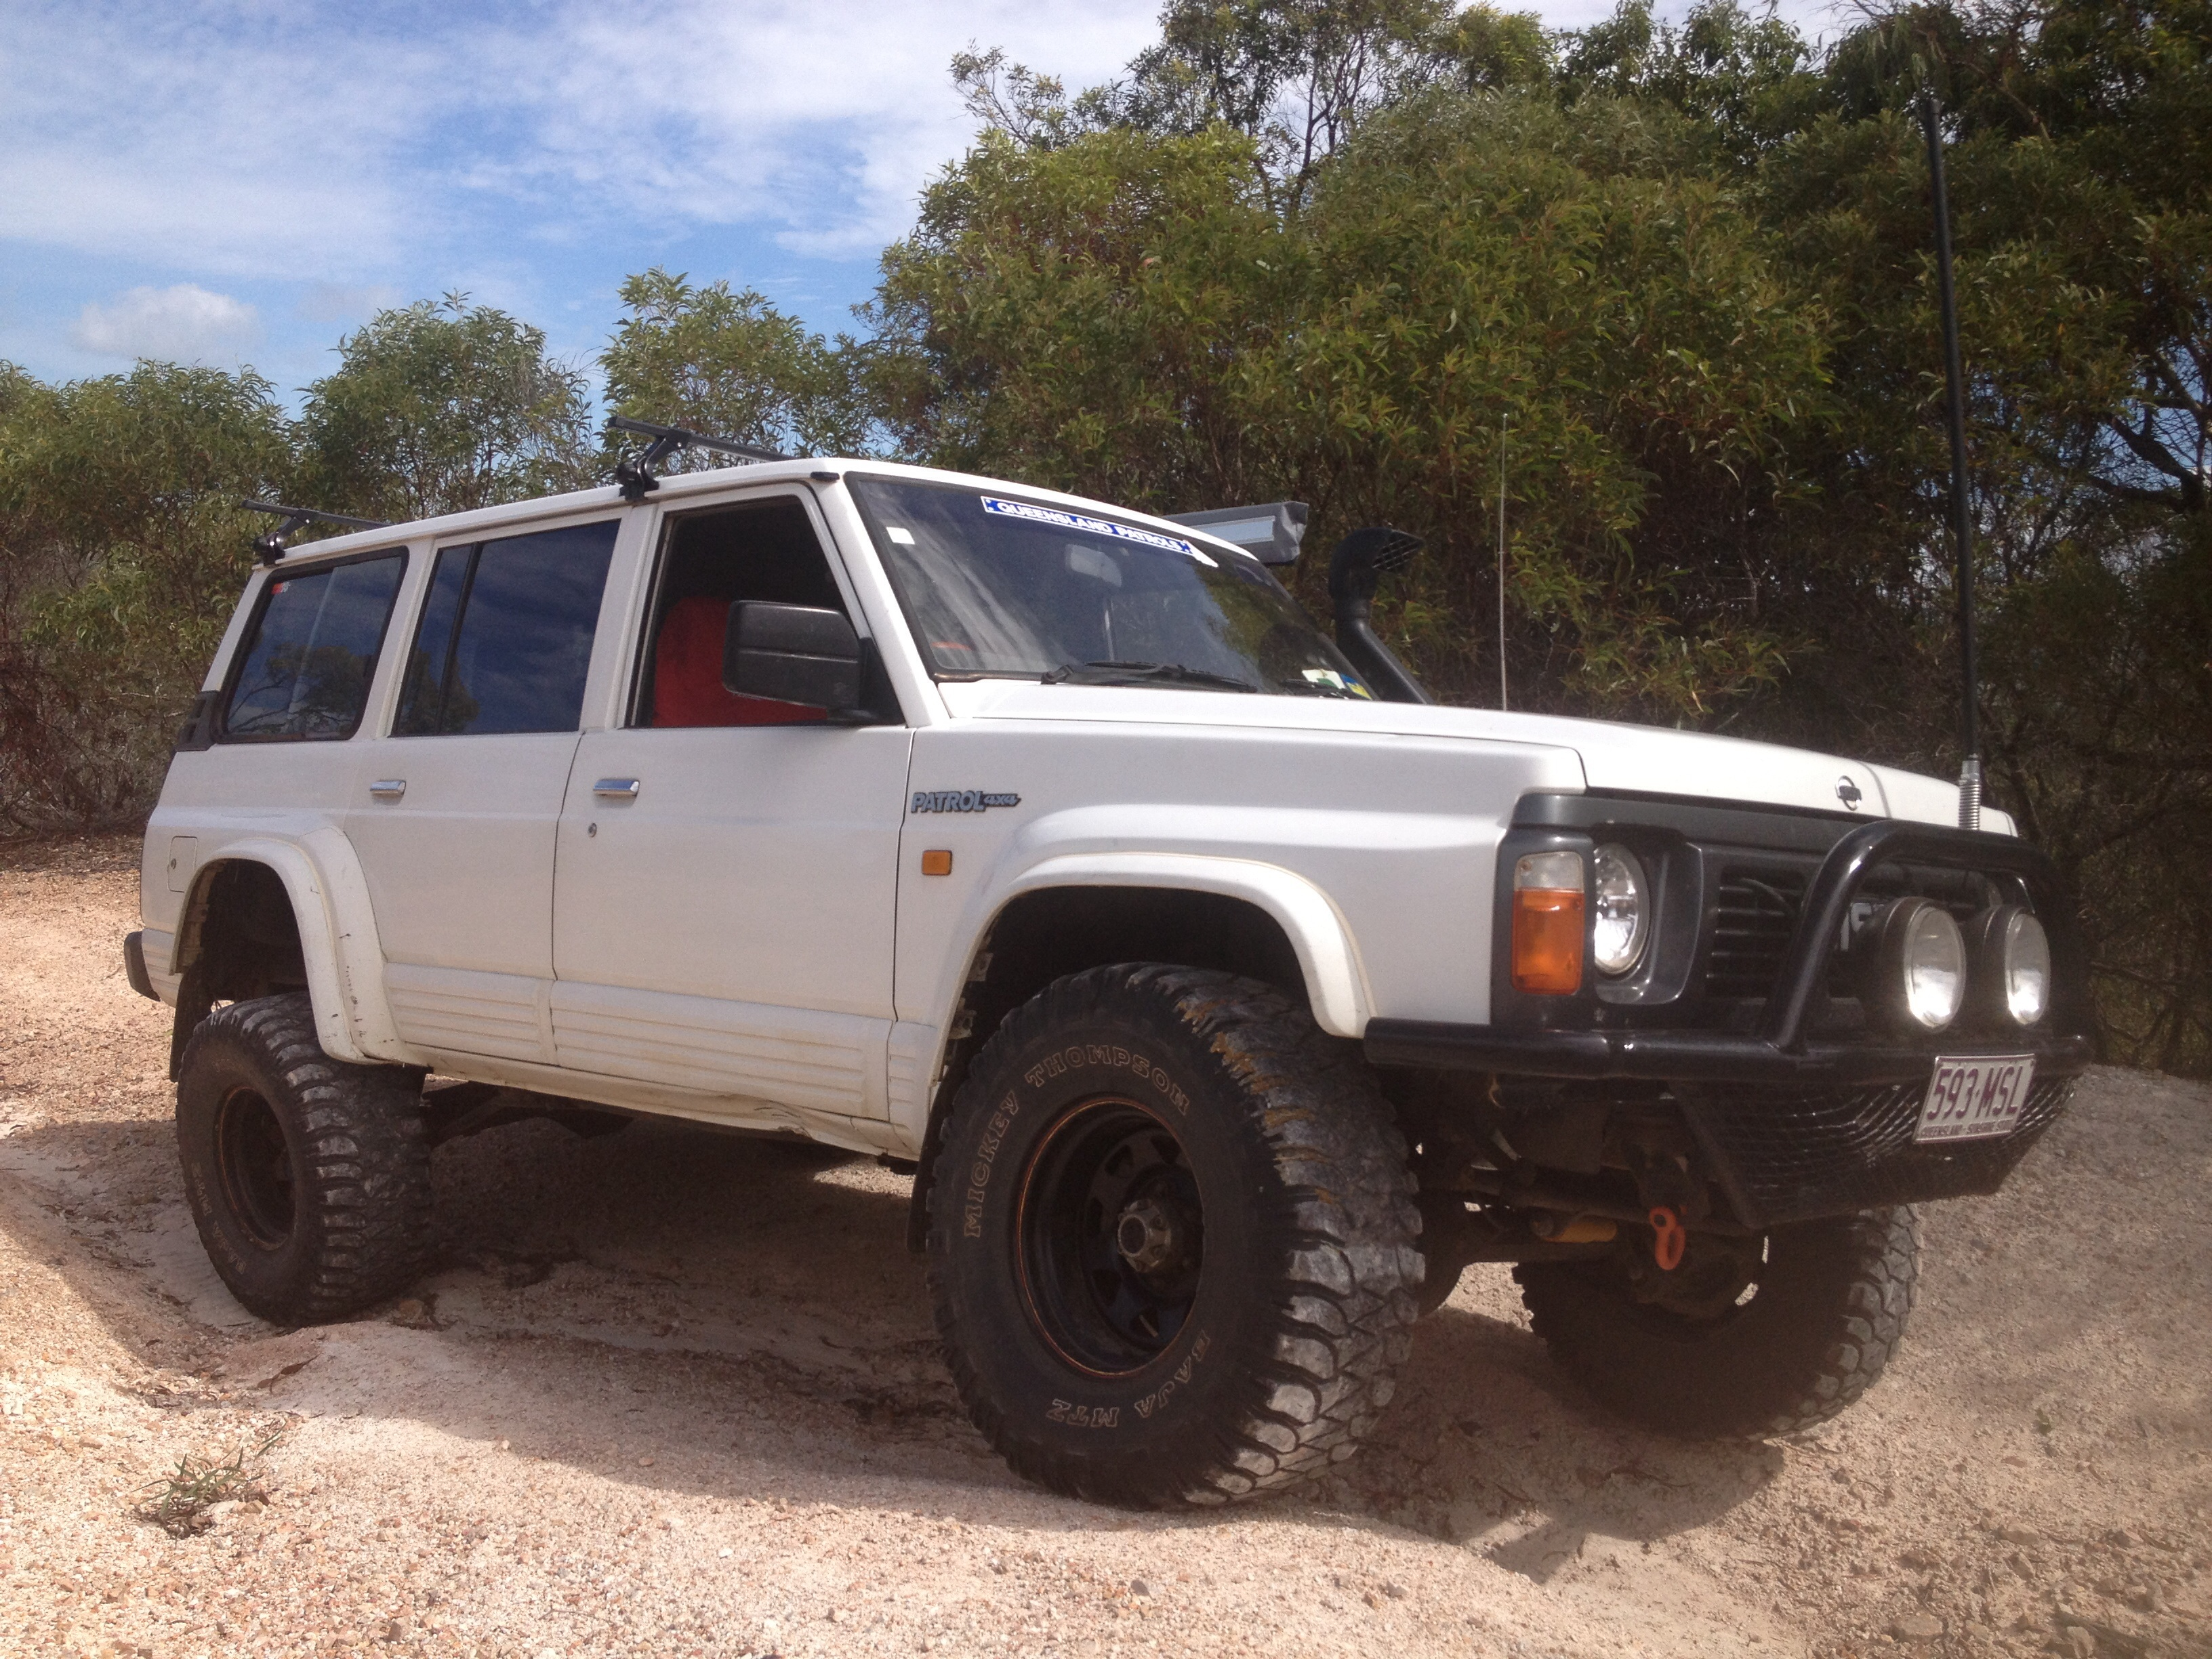 1992 nissan patrol 4x4 for sale or swap qld rockhampton. Black Bedroom Furniture Sets. Home Design Ideas